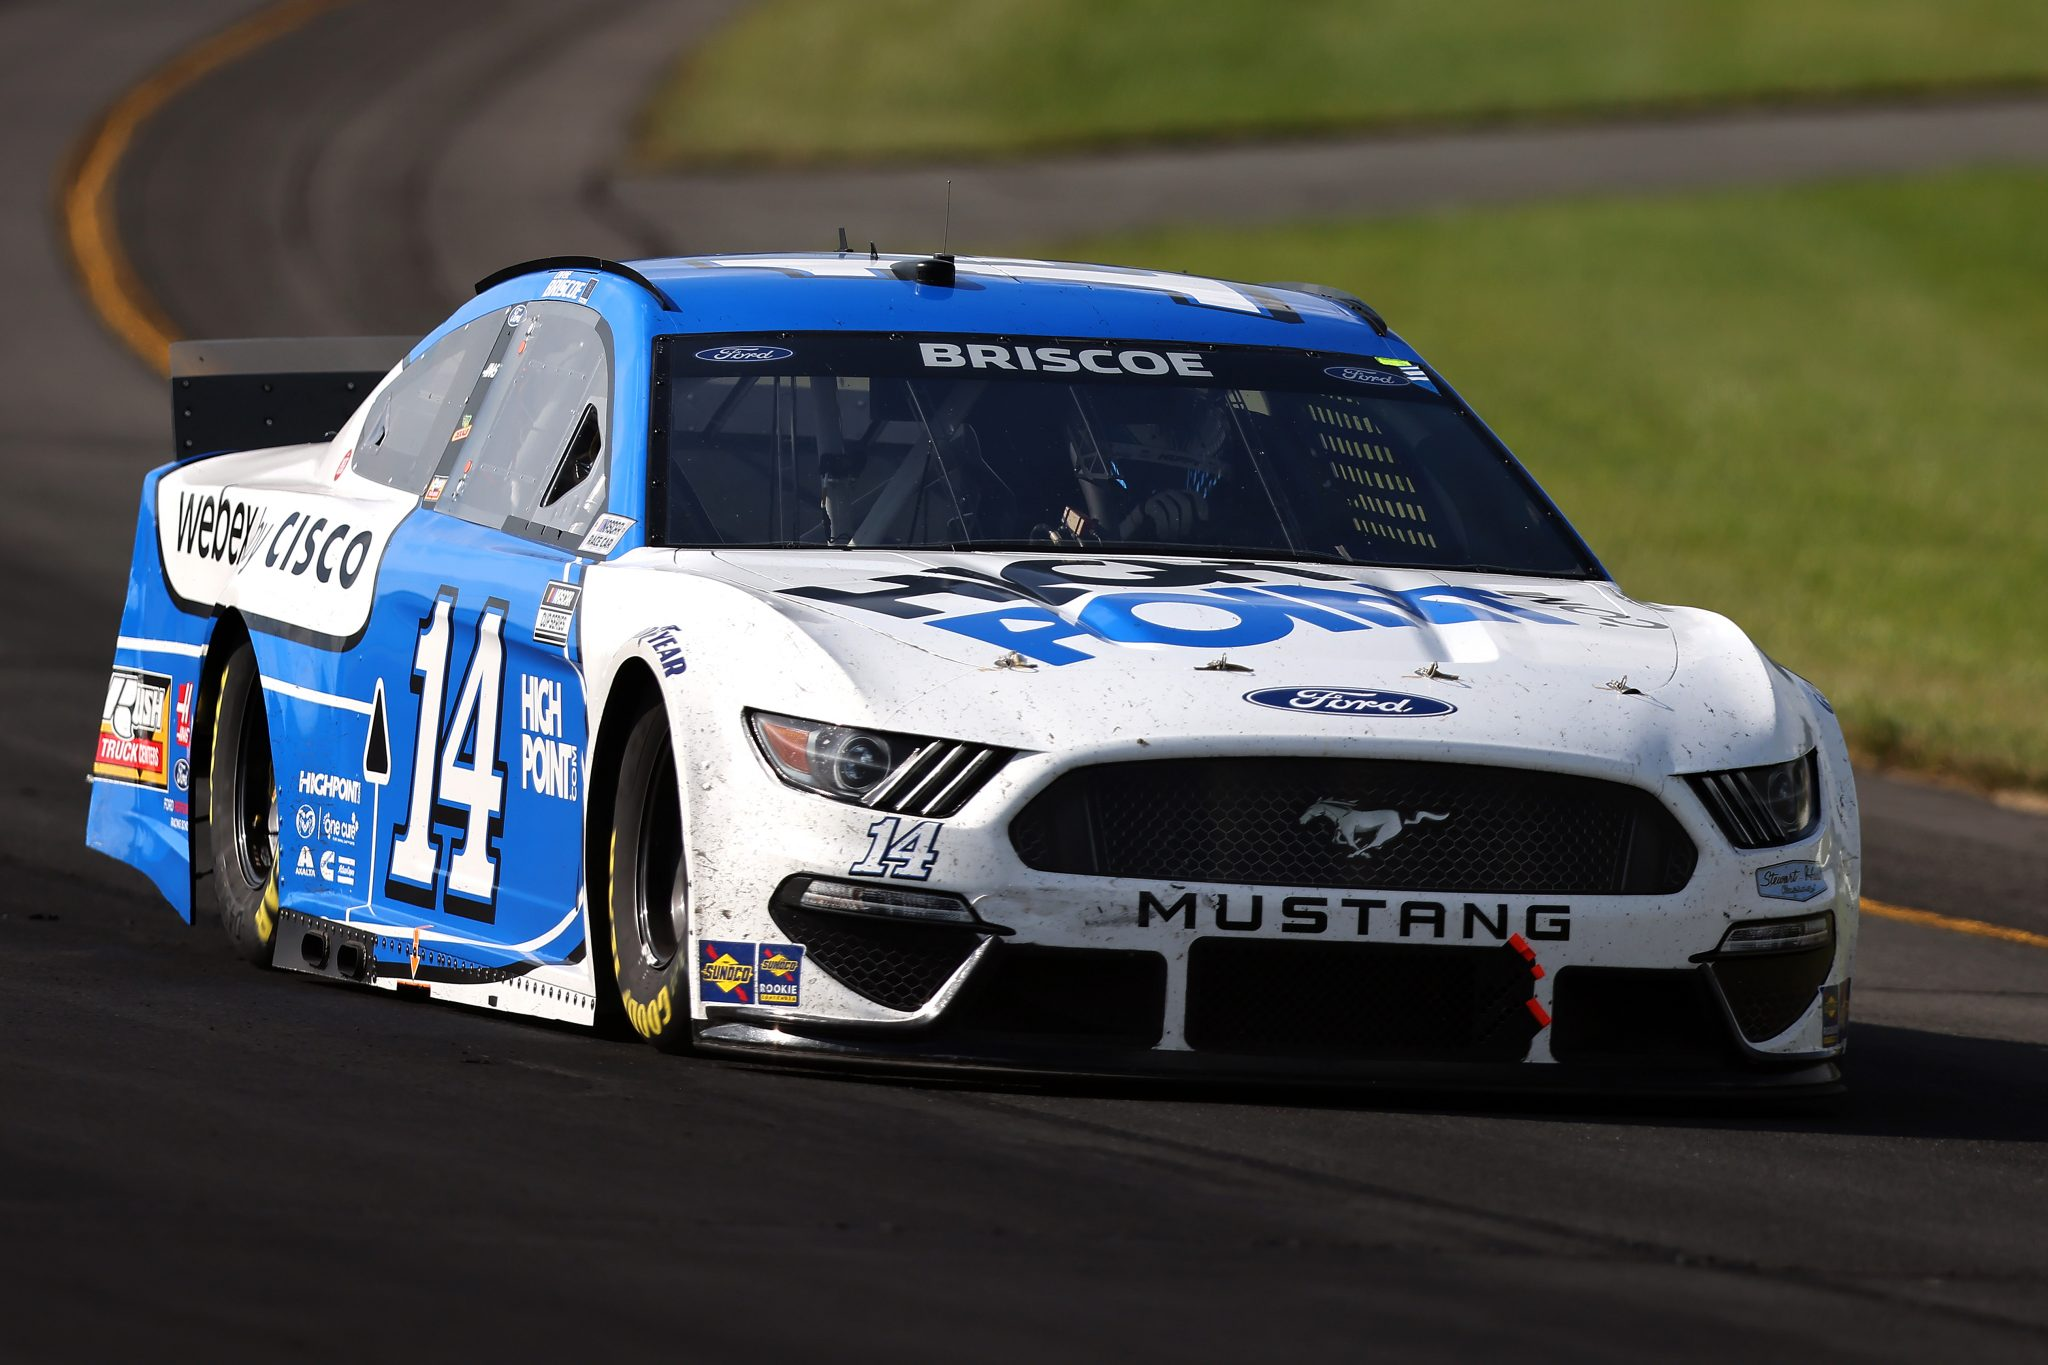 LONG POND, PENNSYLVANIA - JUNE 27: Chase Briscoe, driver of the #14 HighPoint.com/Webex by Cisco Ford, drives during the NASCAR Cup Series Explore the Pocono Mountains 350 at Pocono Raceway on June 27, 2021 in Long Pond, Pennsylvania. (Photo by James Gilbert/Getty Images) | Getty Images